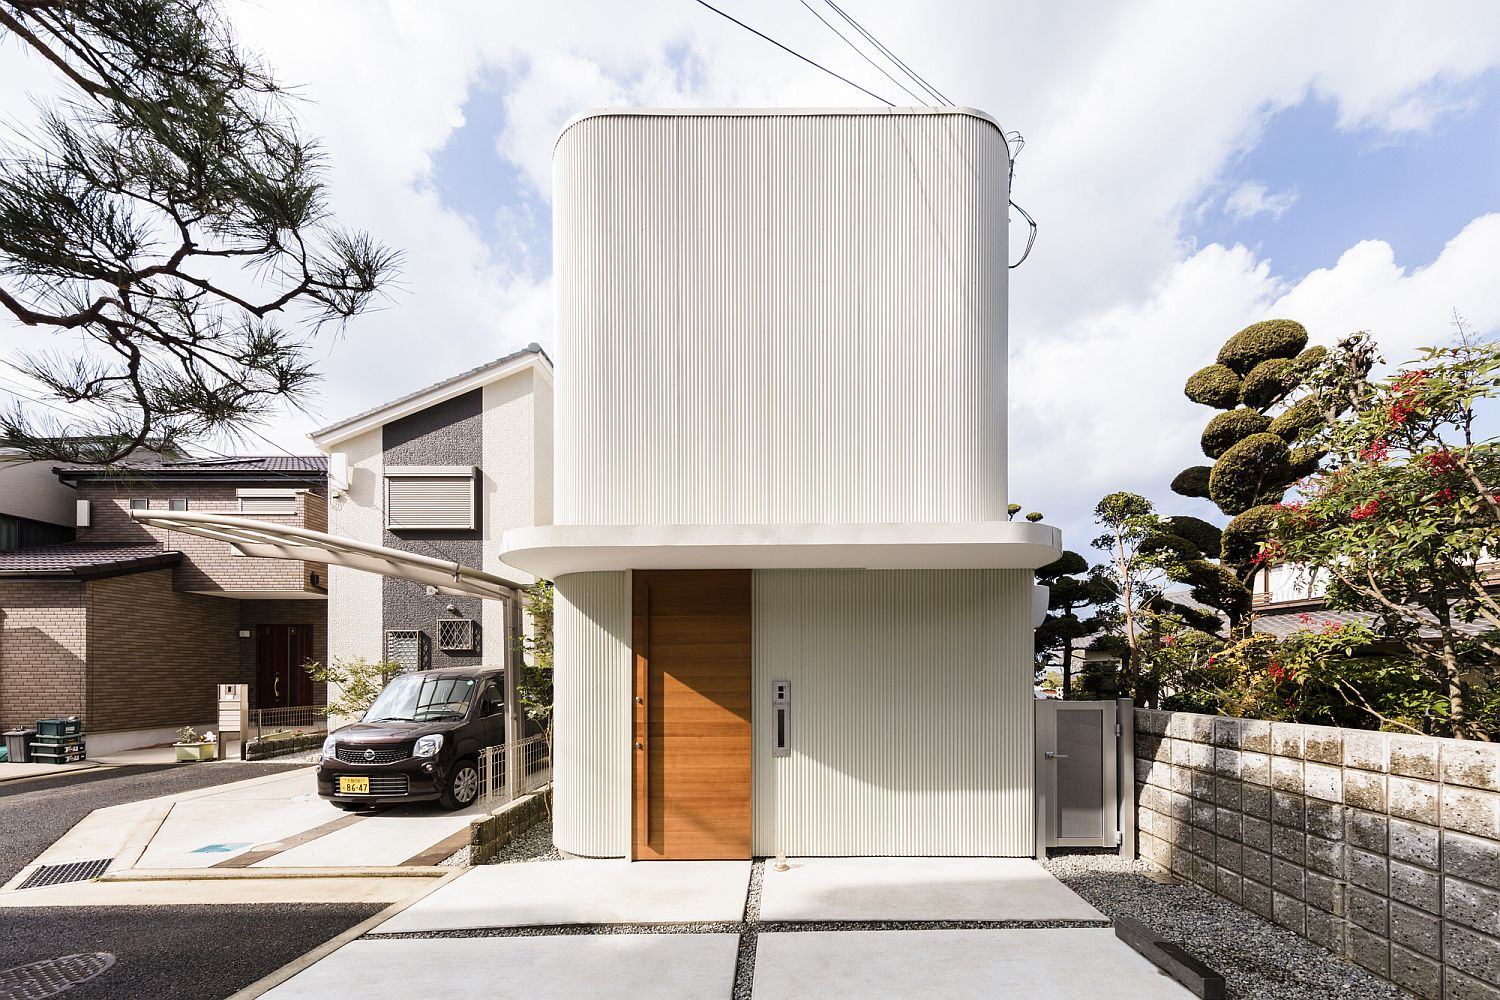 Street facade in white wth curved walls and a wooden entrance door of home in Japan